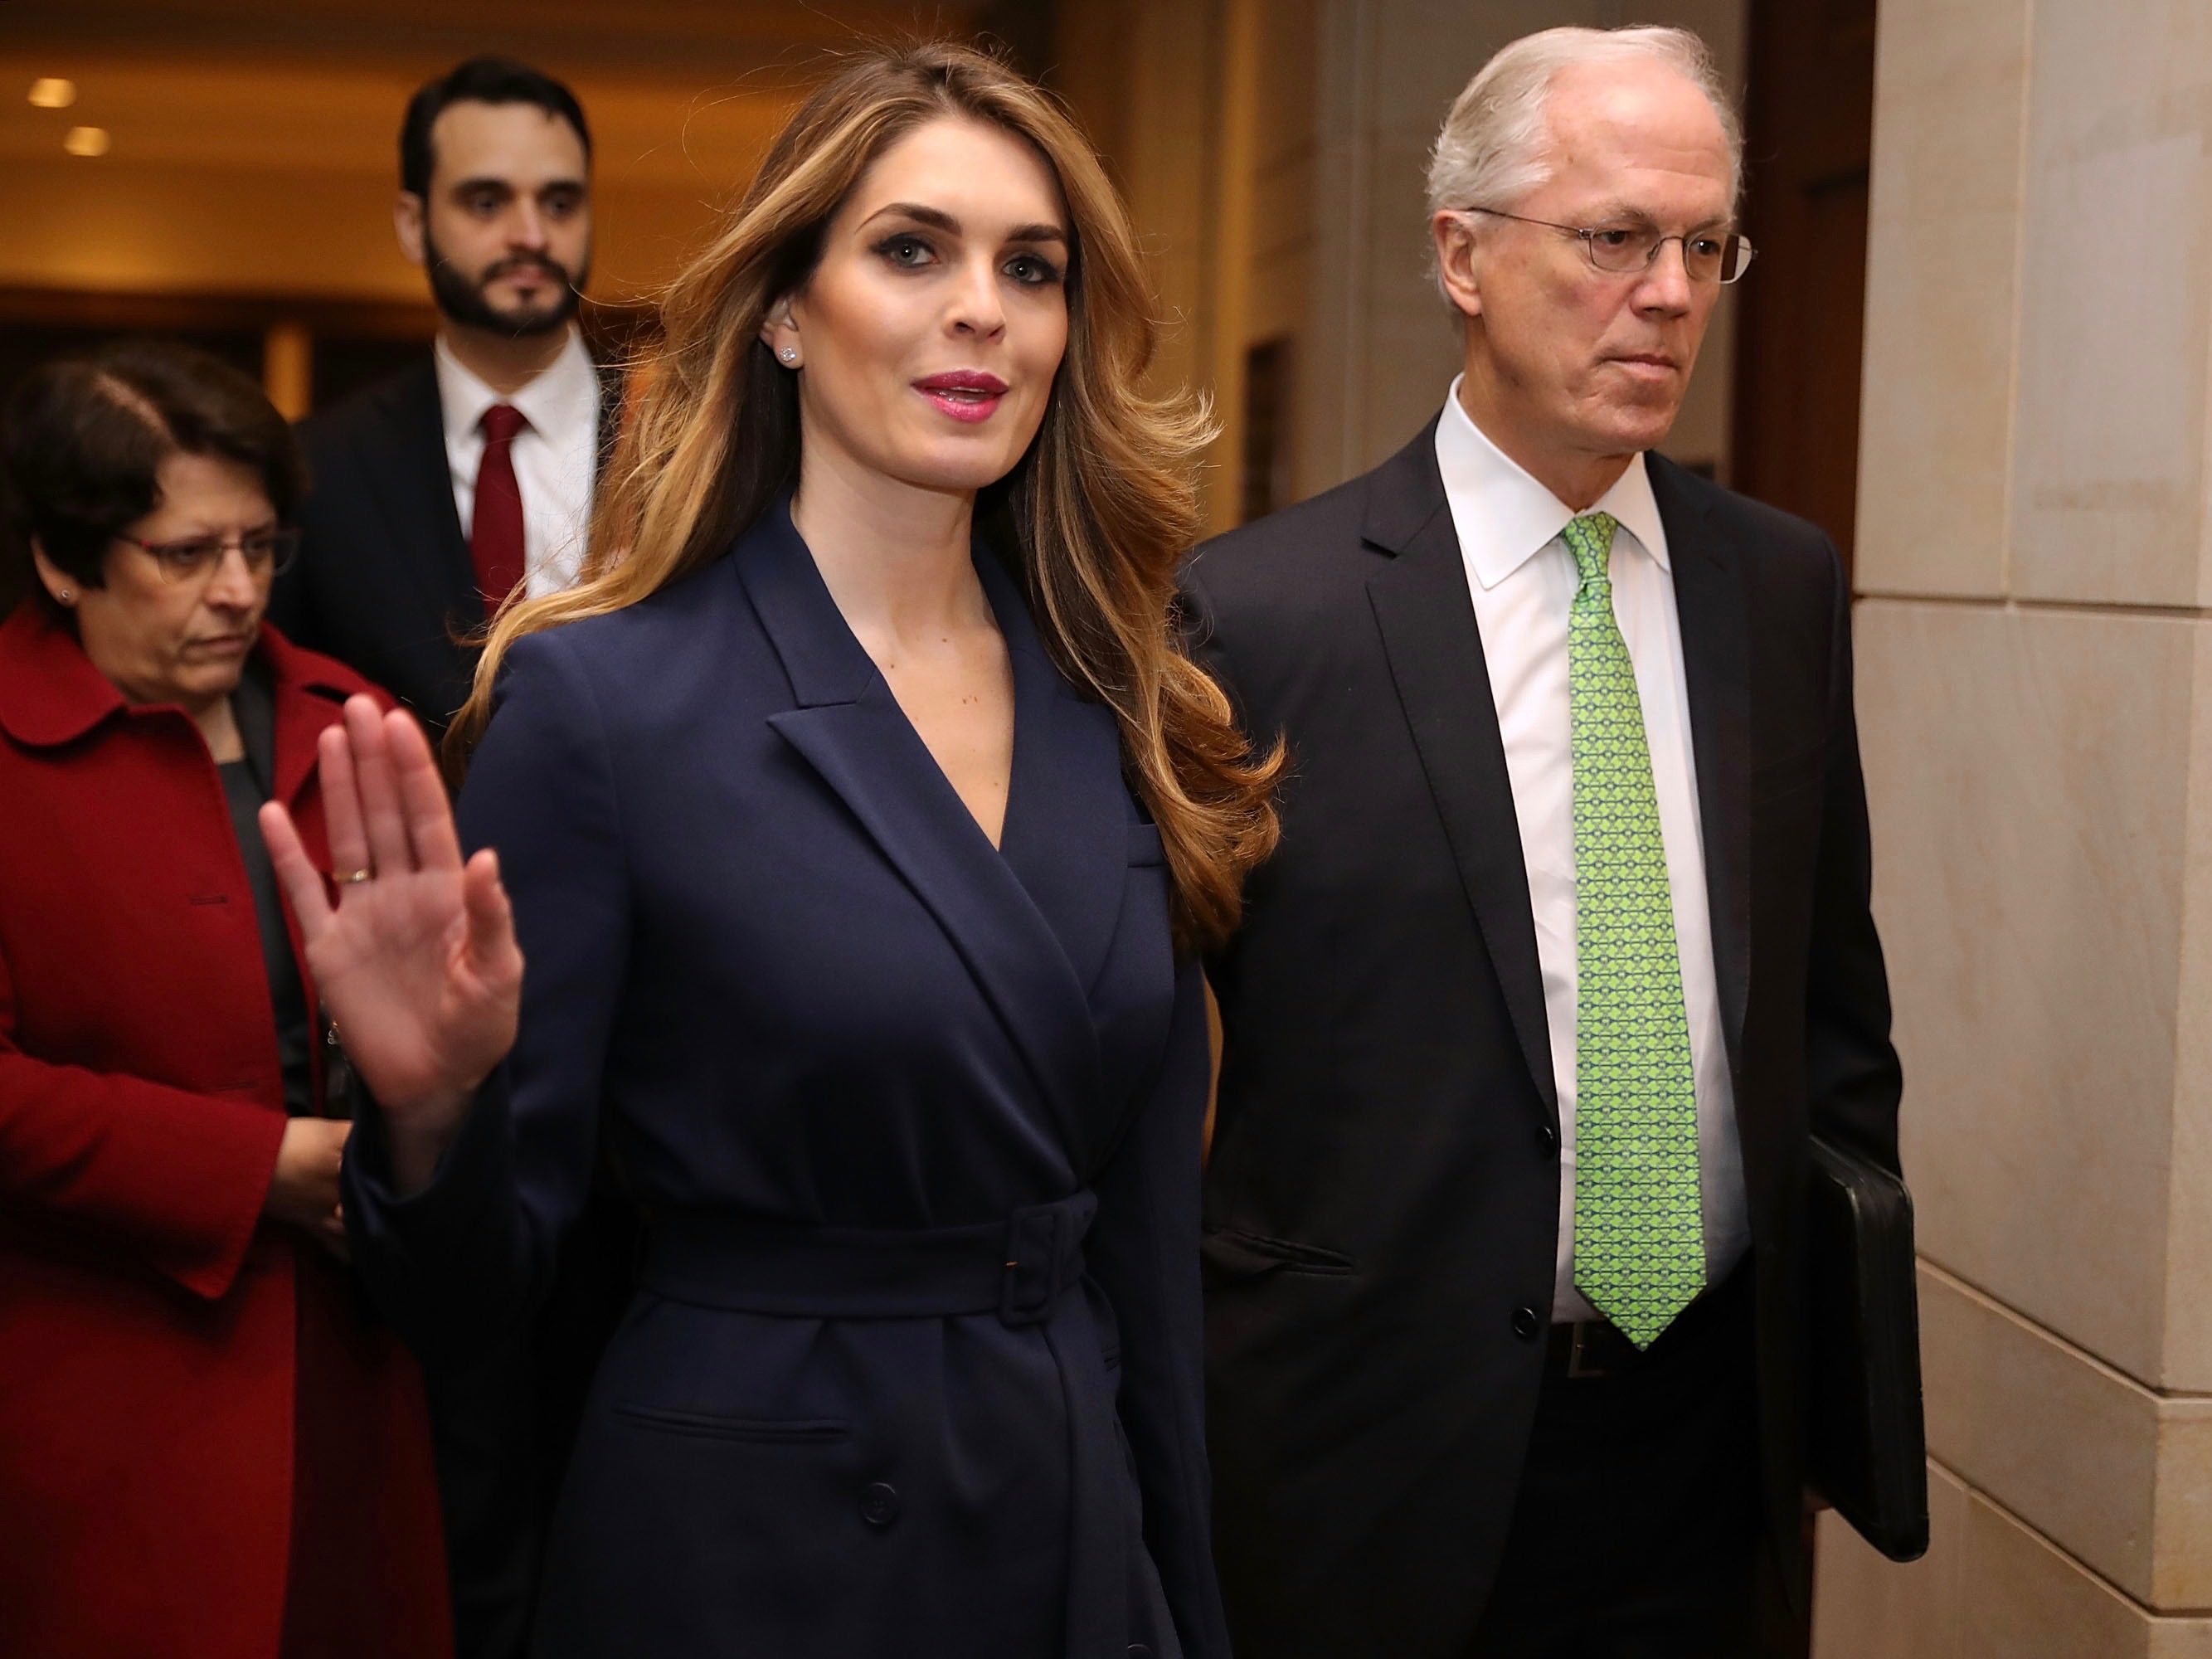 White House Communications Director Hope Hicks Is Interviewed By House Intelligence Committee During Russian Investigation